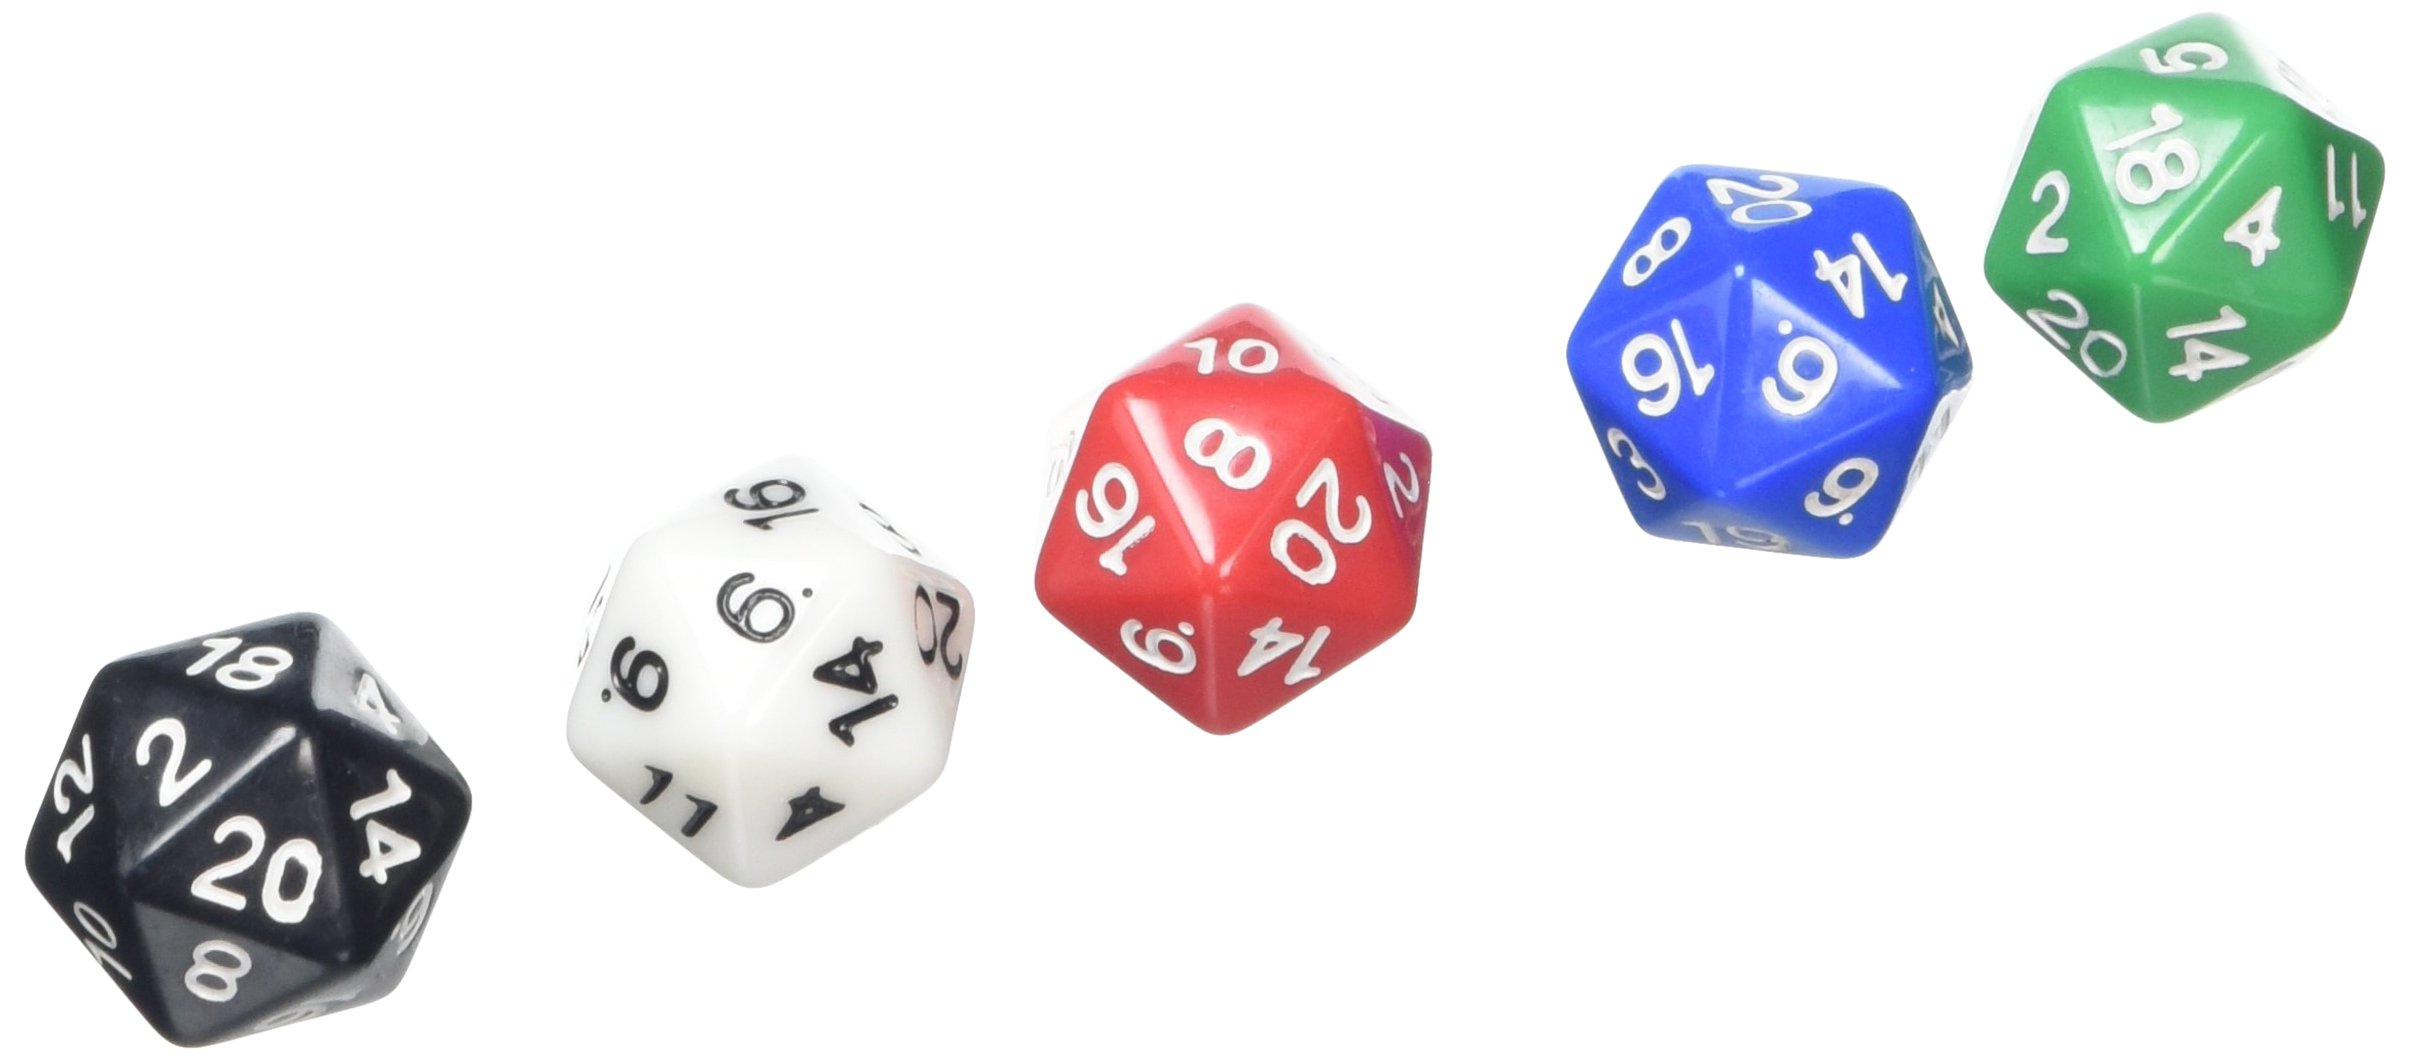 ADC-Blackfire-Entertainment-91495-Wrfel-20-mm-Assorted-D20-Dice-5-Stck